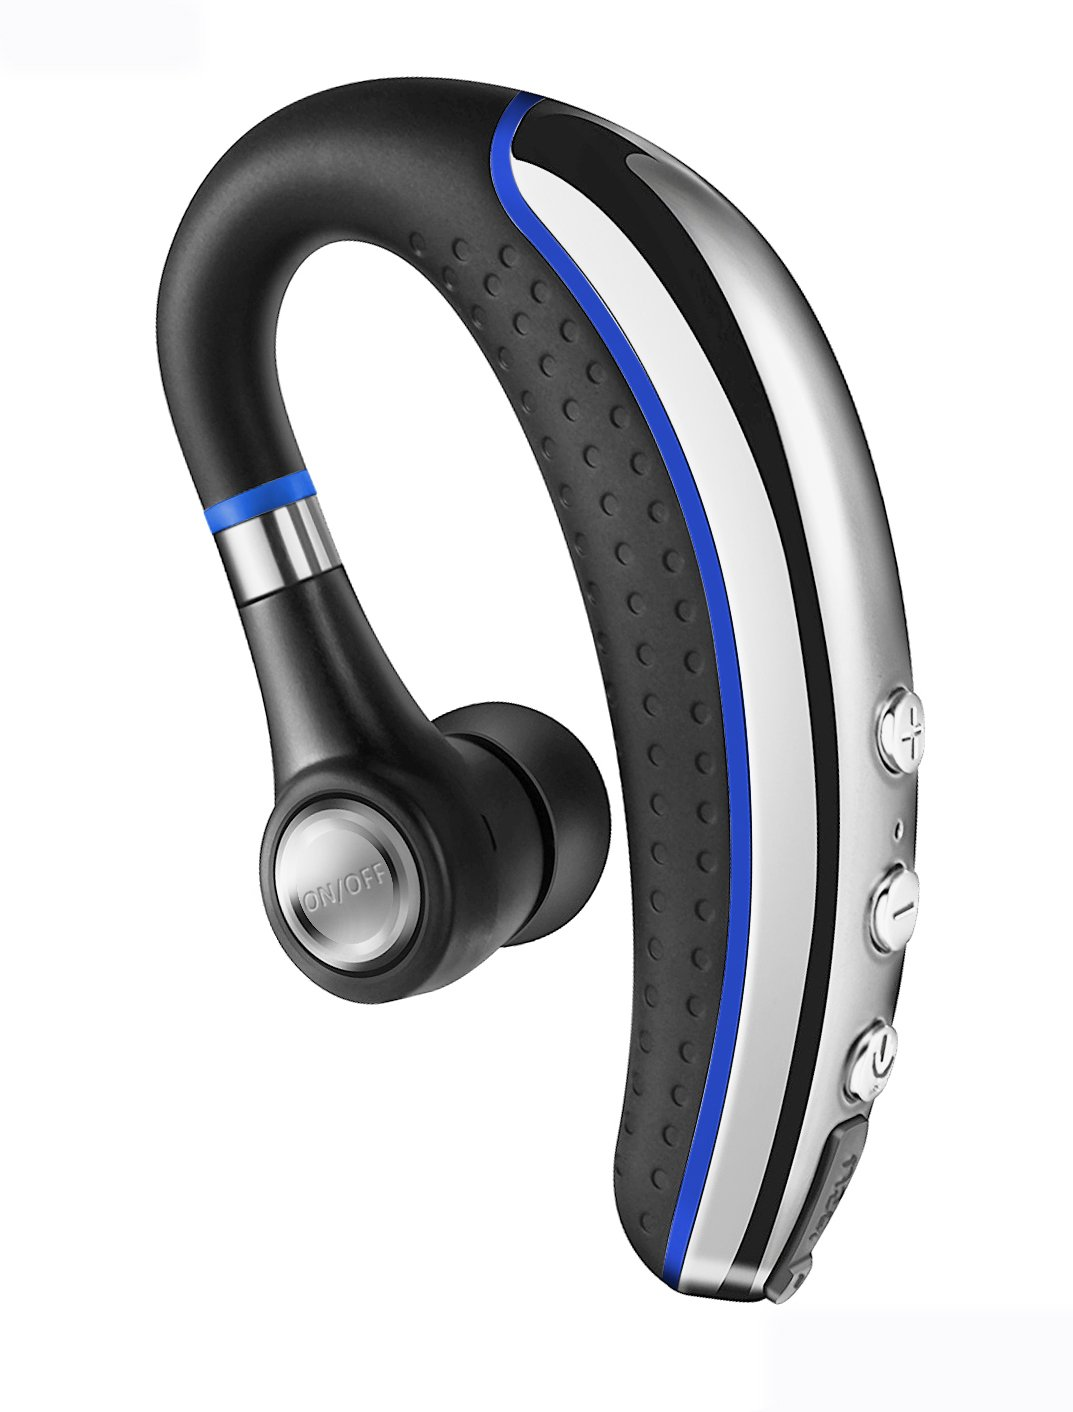 Bluetooth Headset, Wireless Bluetooth Headphones with Mic Noise Reduction and Mute Lightweight Earphones for Business, Office, Driving Bluetooth V4.1 Handsfree In-Ear Earpiece Earbuds for ISO&Android